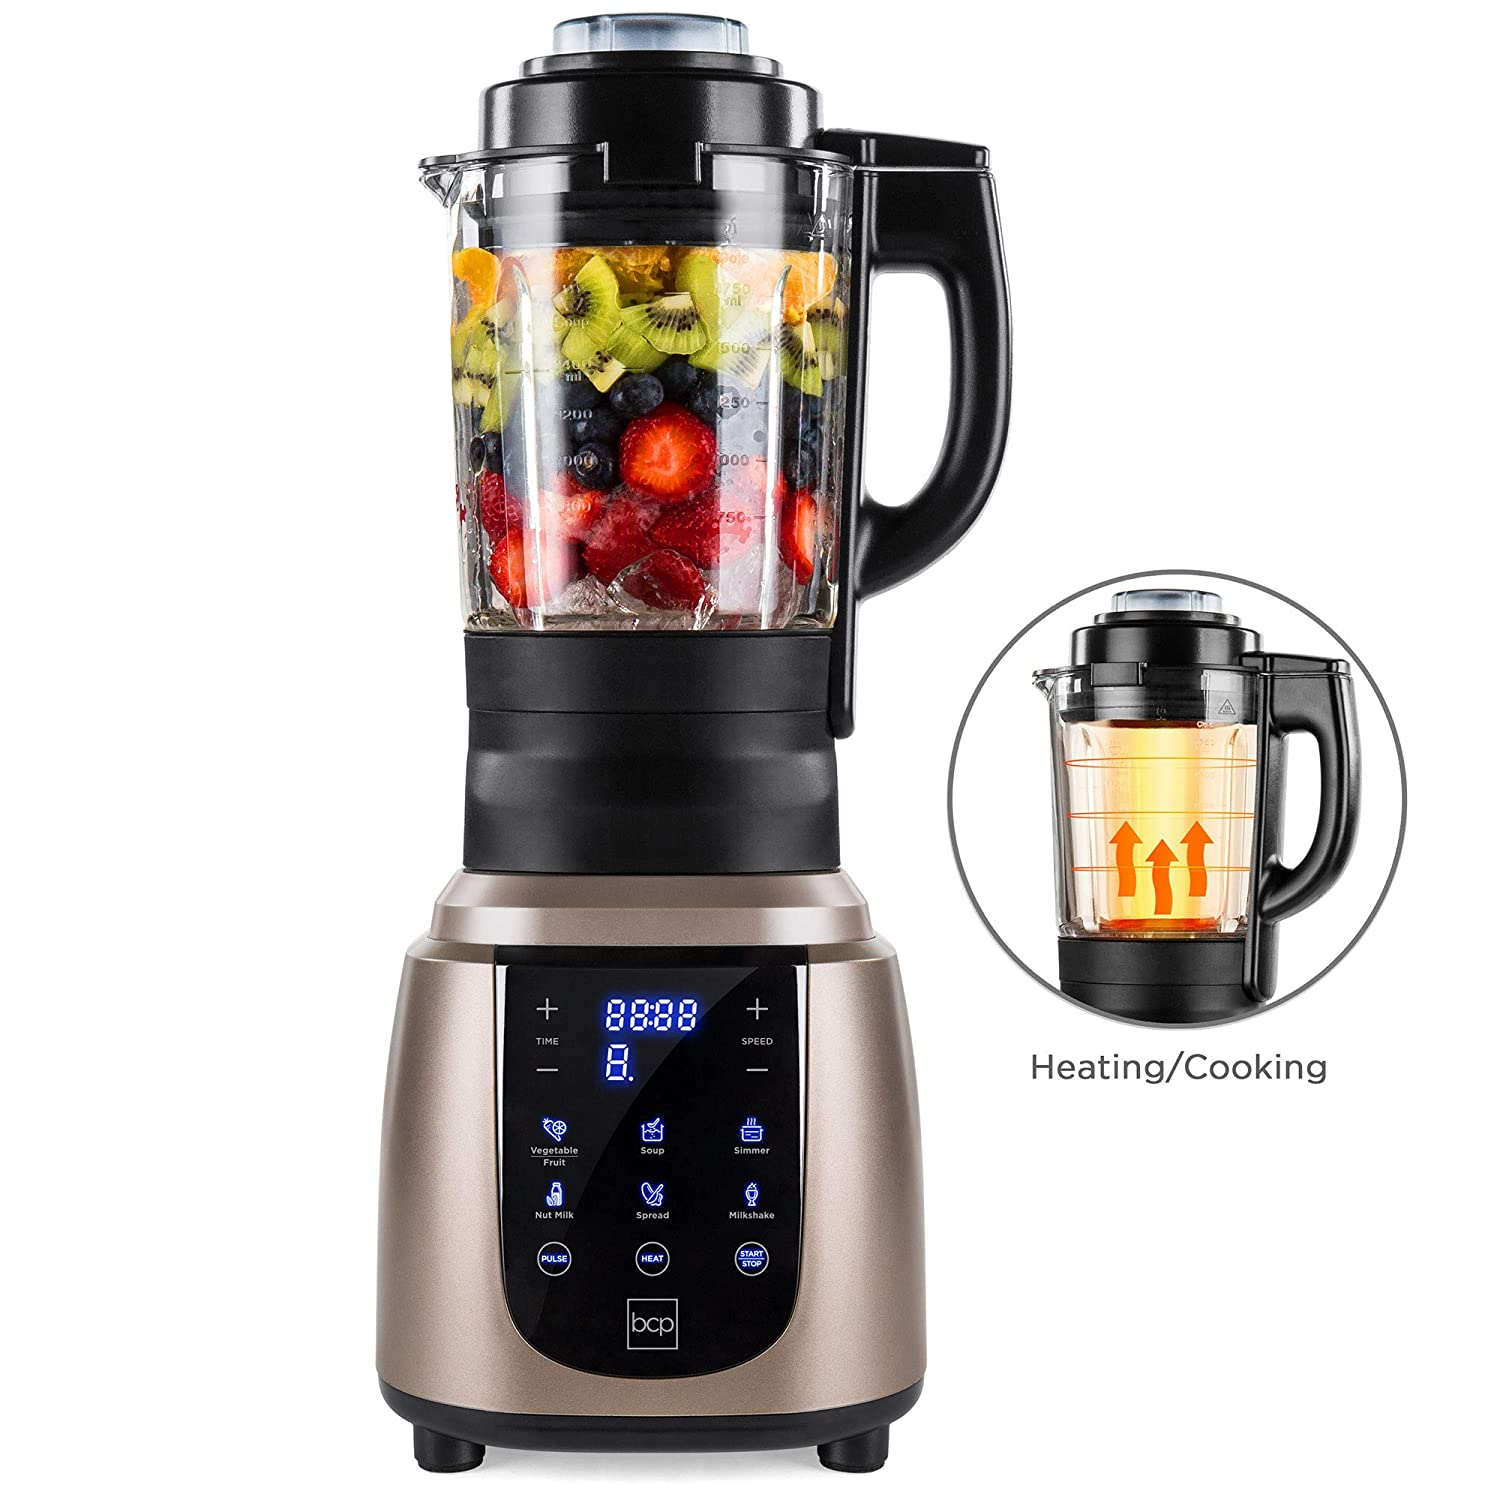 Best Choice Products 1200W 1.8L Multifunctional High-Speed Digital Professional Kitchen Smoothie Blender w Heating Function, Auto-Clean, Glass Jar, Up To 42,000RPM, Gold